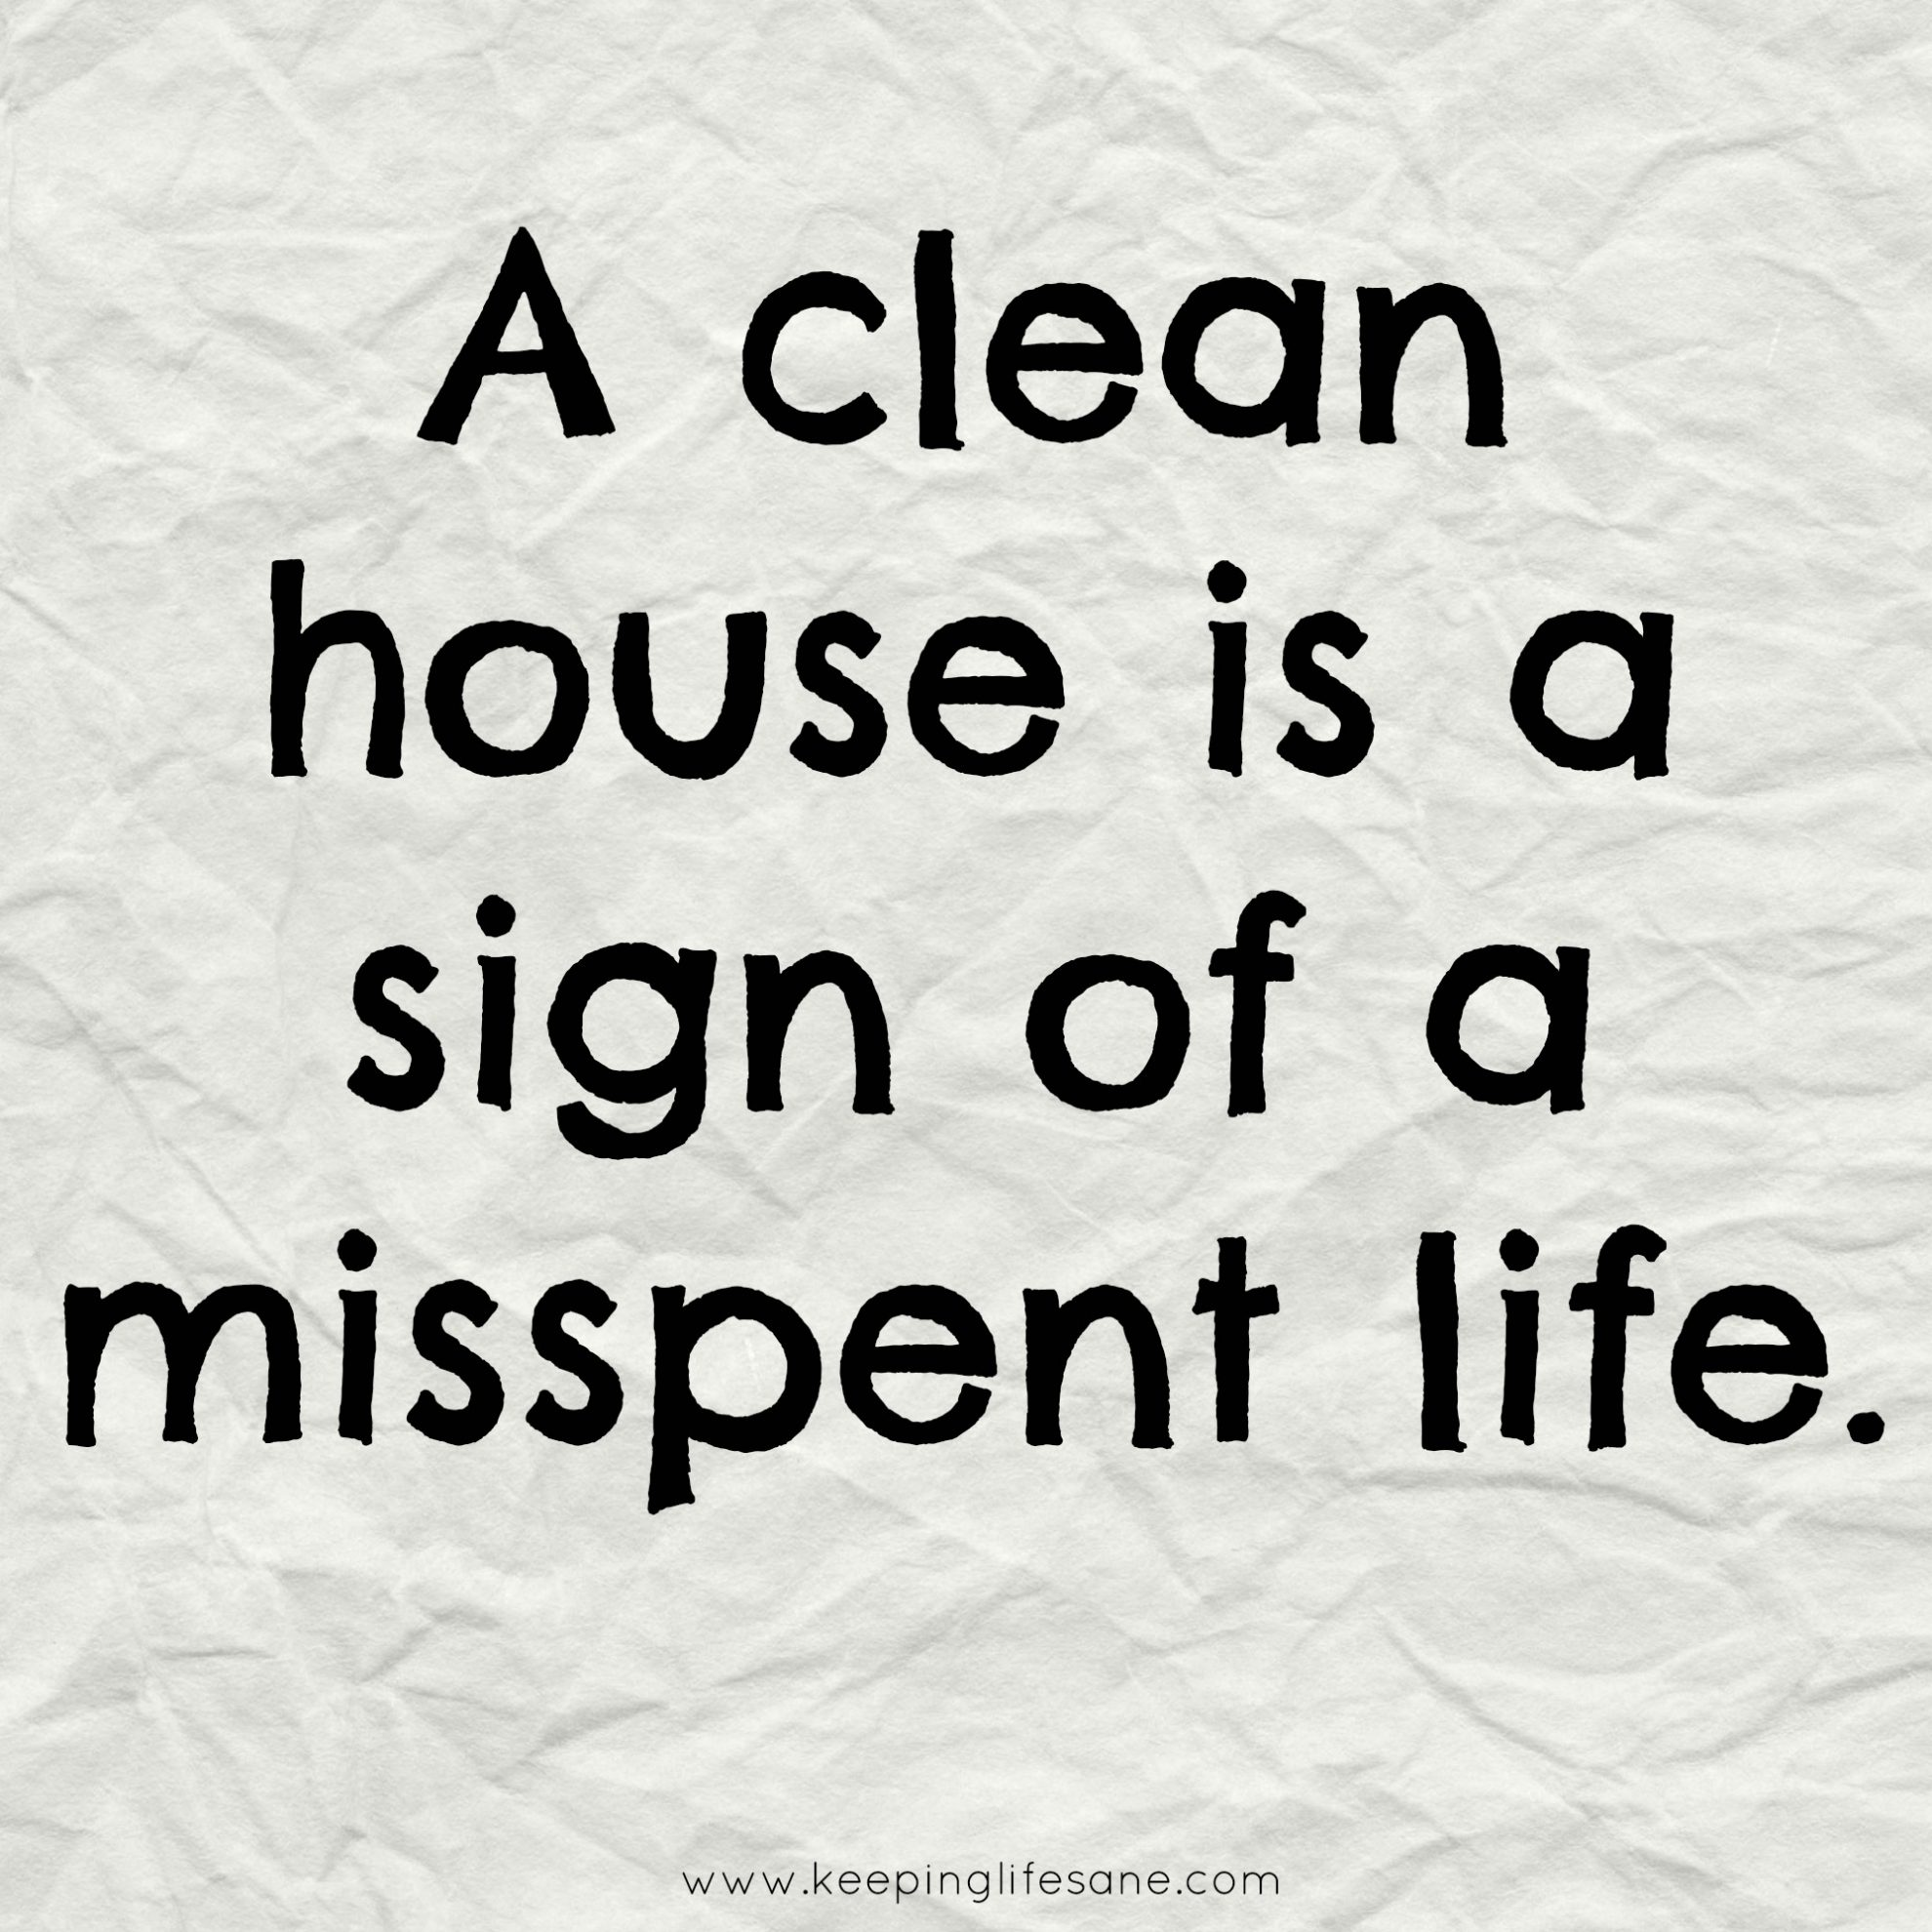 Don't you just love this quote! A clean house is a sign of a misspent life!